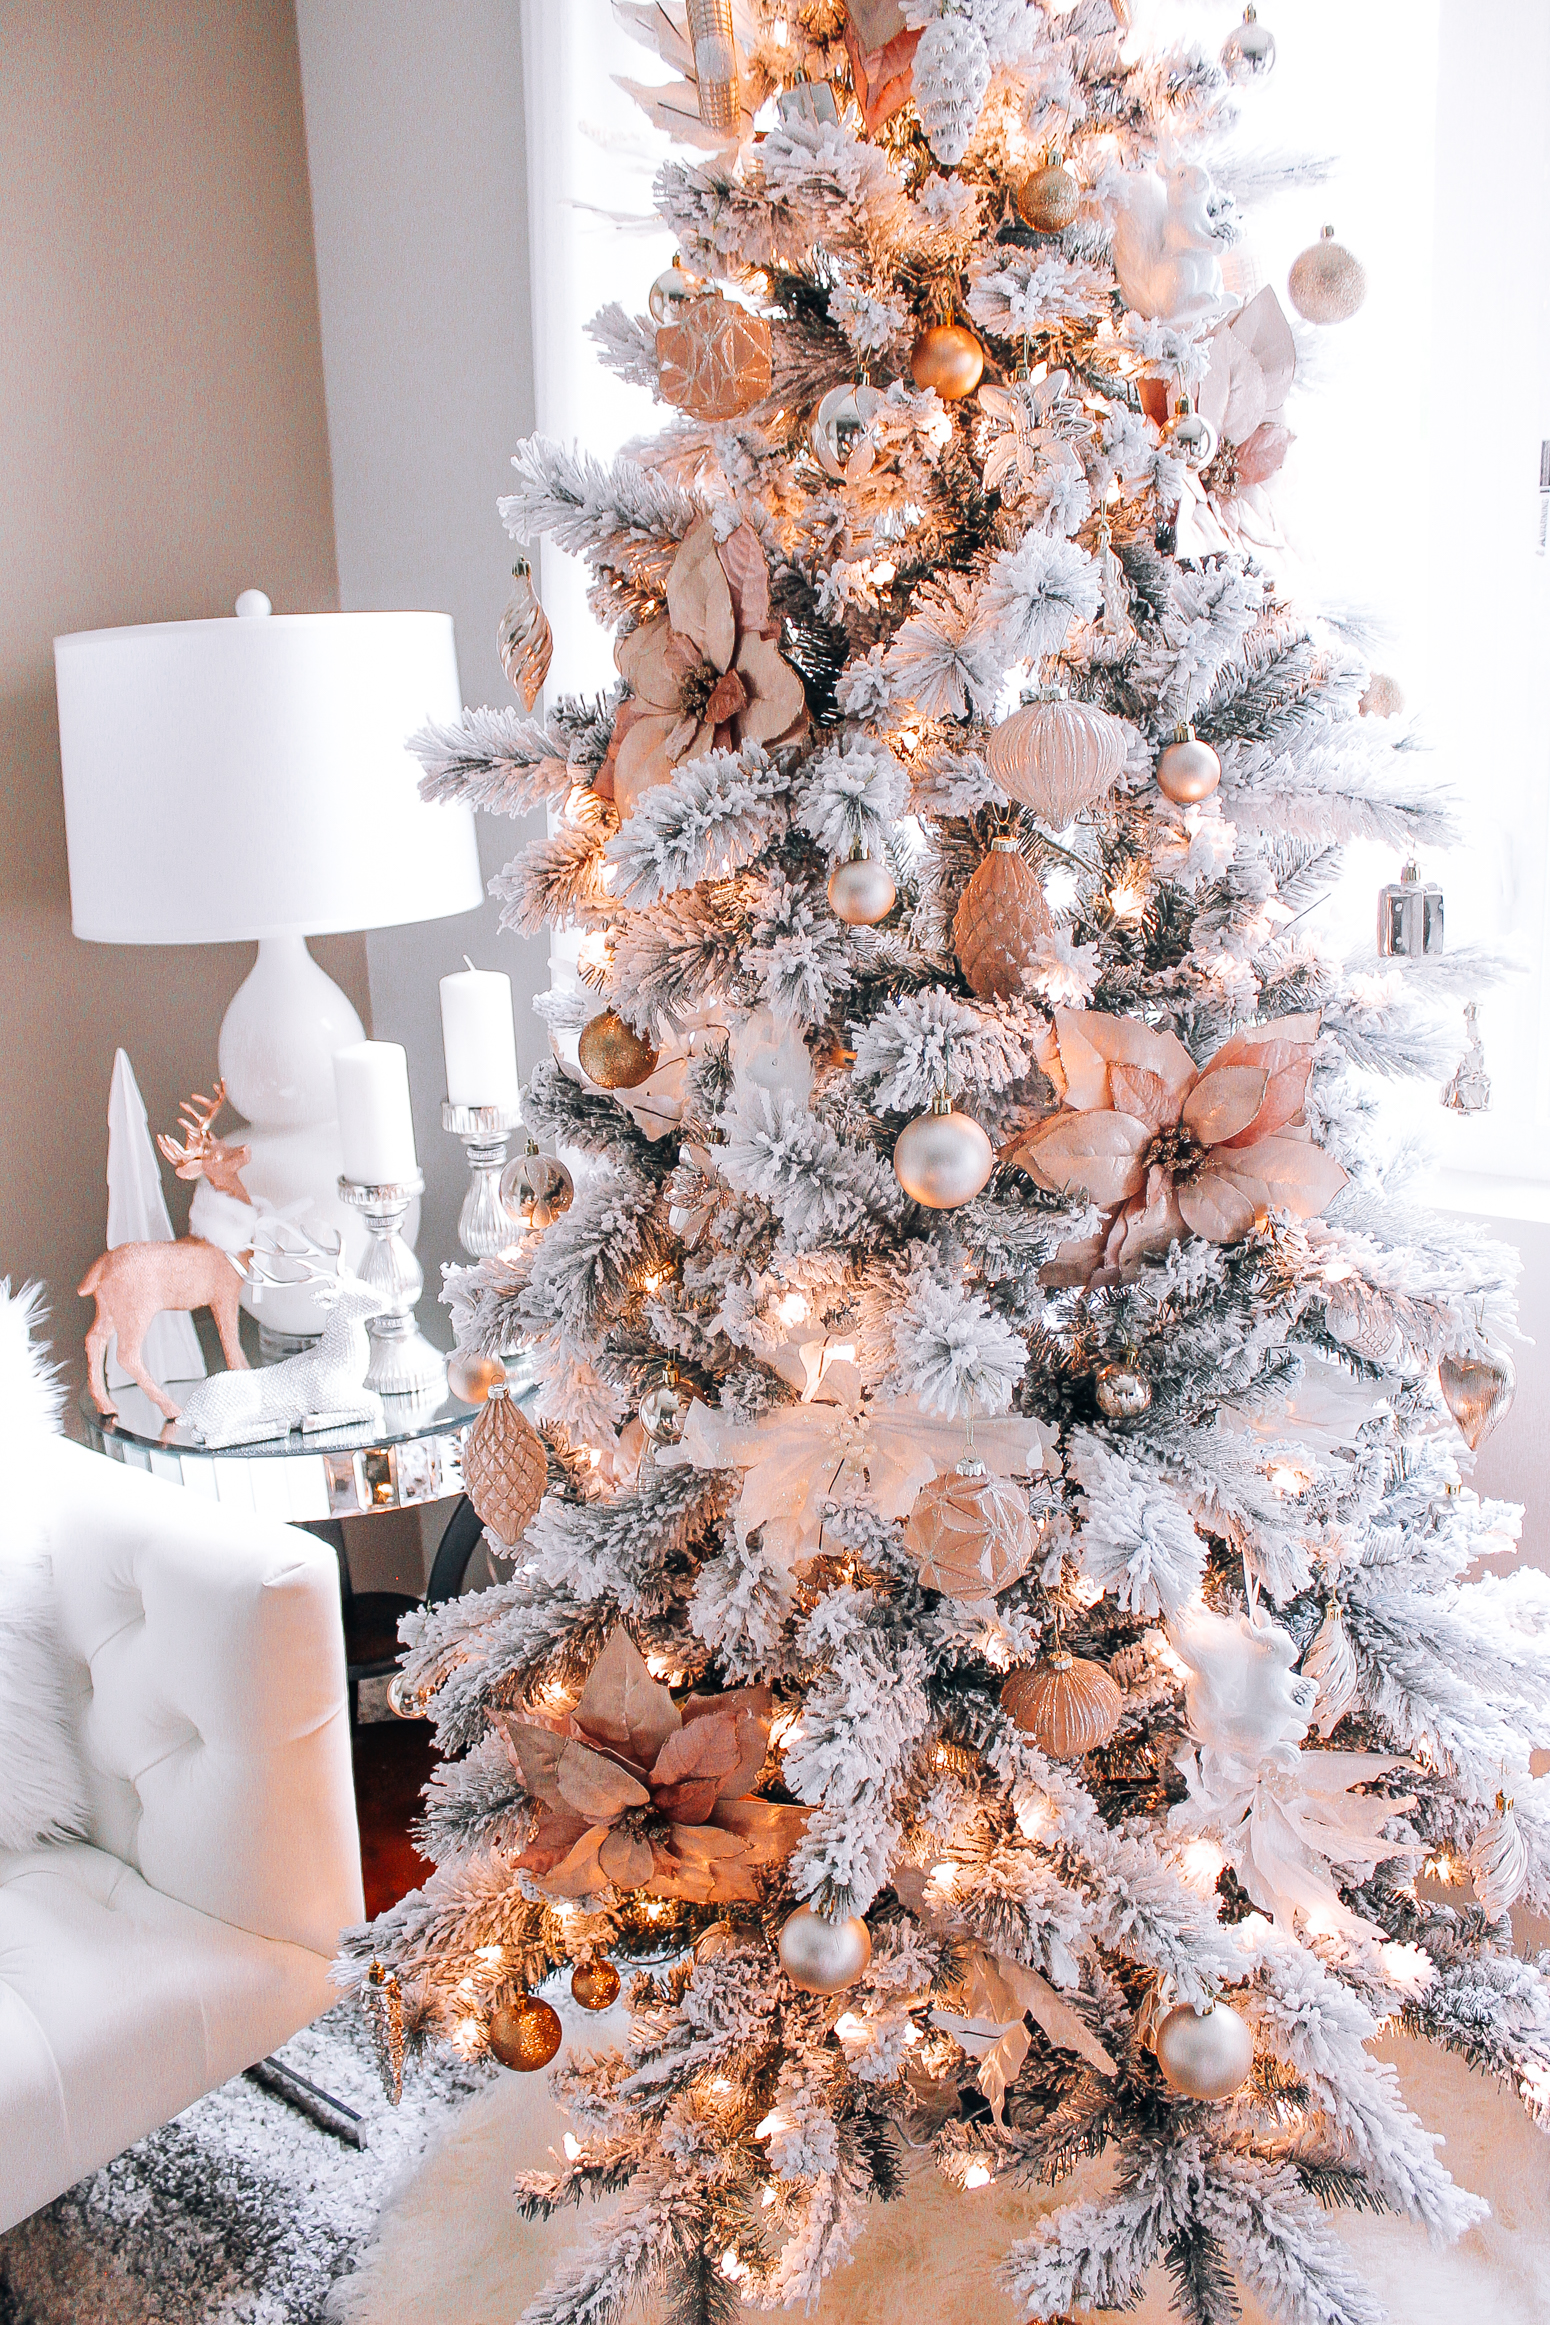 Christmas Decor Blon In The City Pink Rose Gold Hot